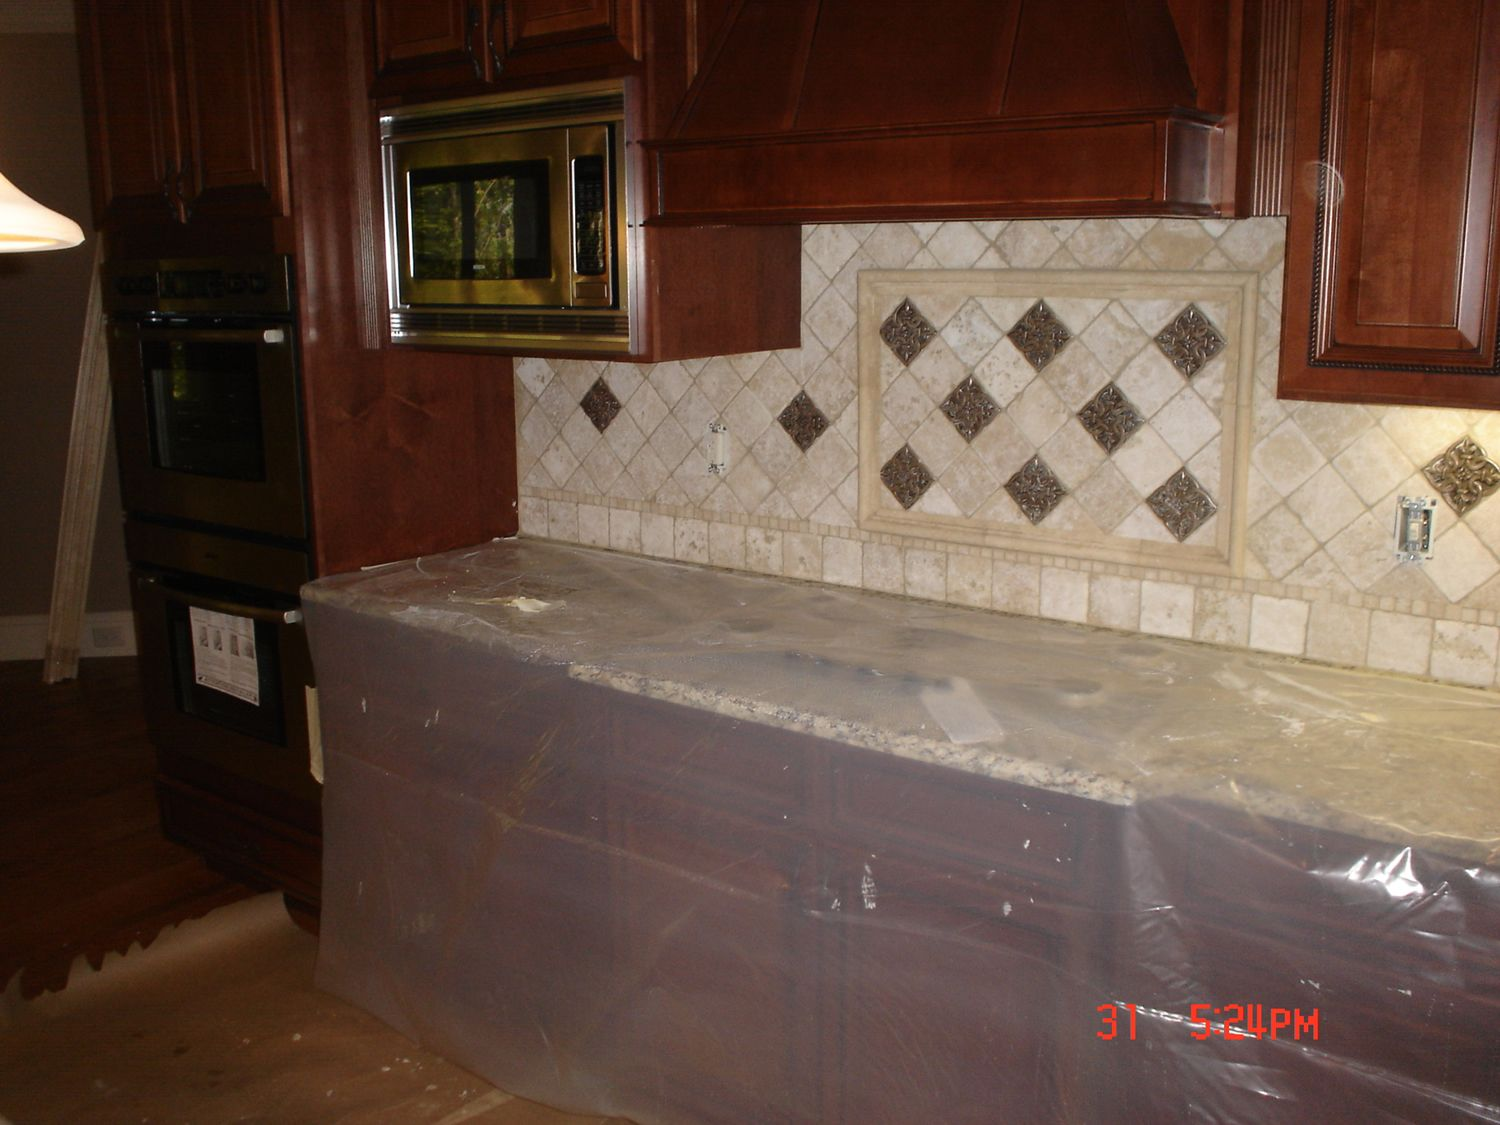 Kitchen travertine tile backsplash ideas kitchen tile backsplash installation in atlanta ga - Backsplash designs travertine ...